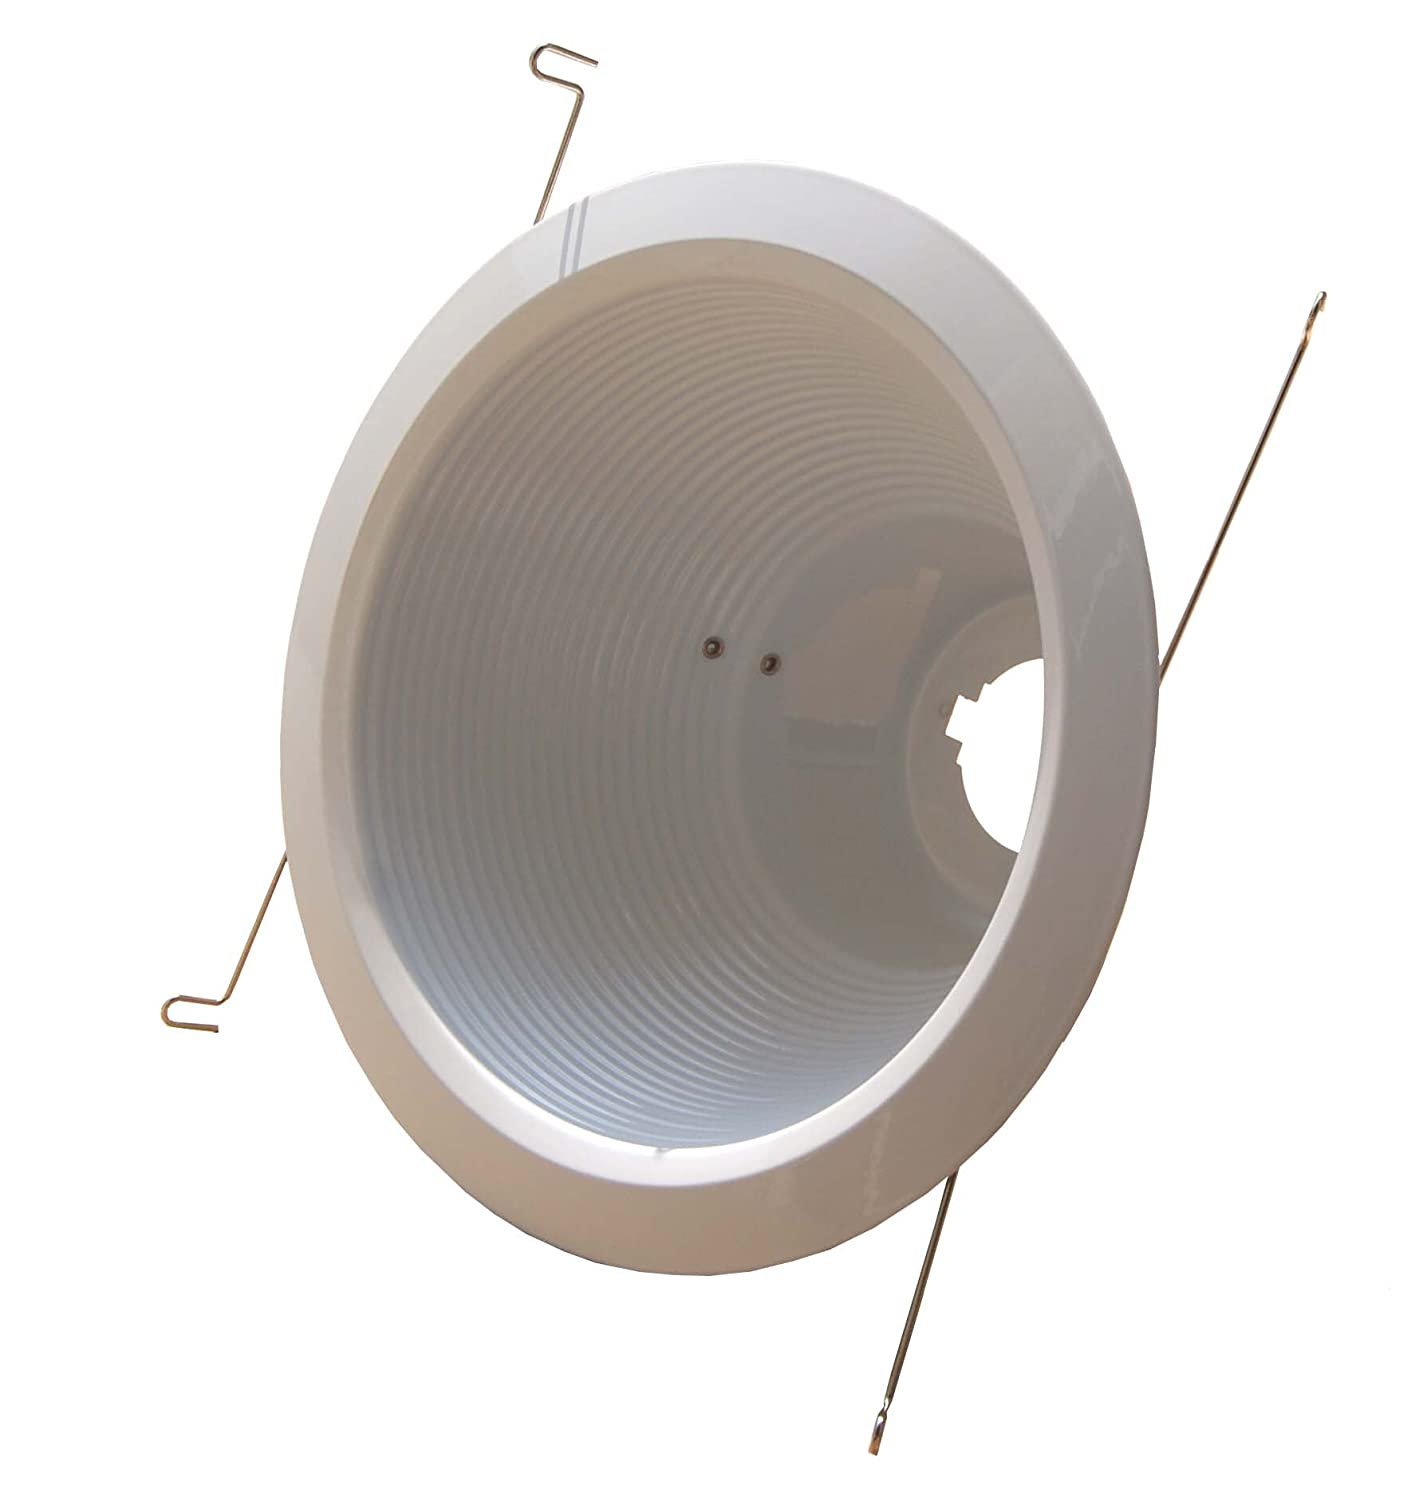 6-Pack--6 Deep Self Flange Air-Shut Baffle Trim For Line Voltage Recessed Light-White Joint Bright Lighting JBL6-243-WH-WH